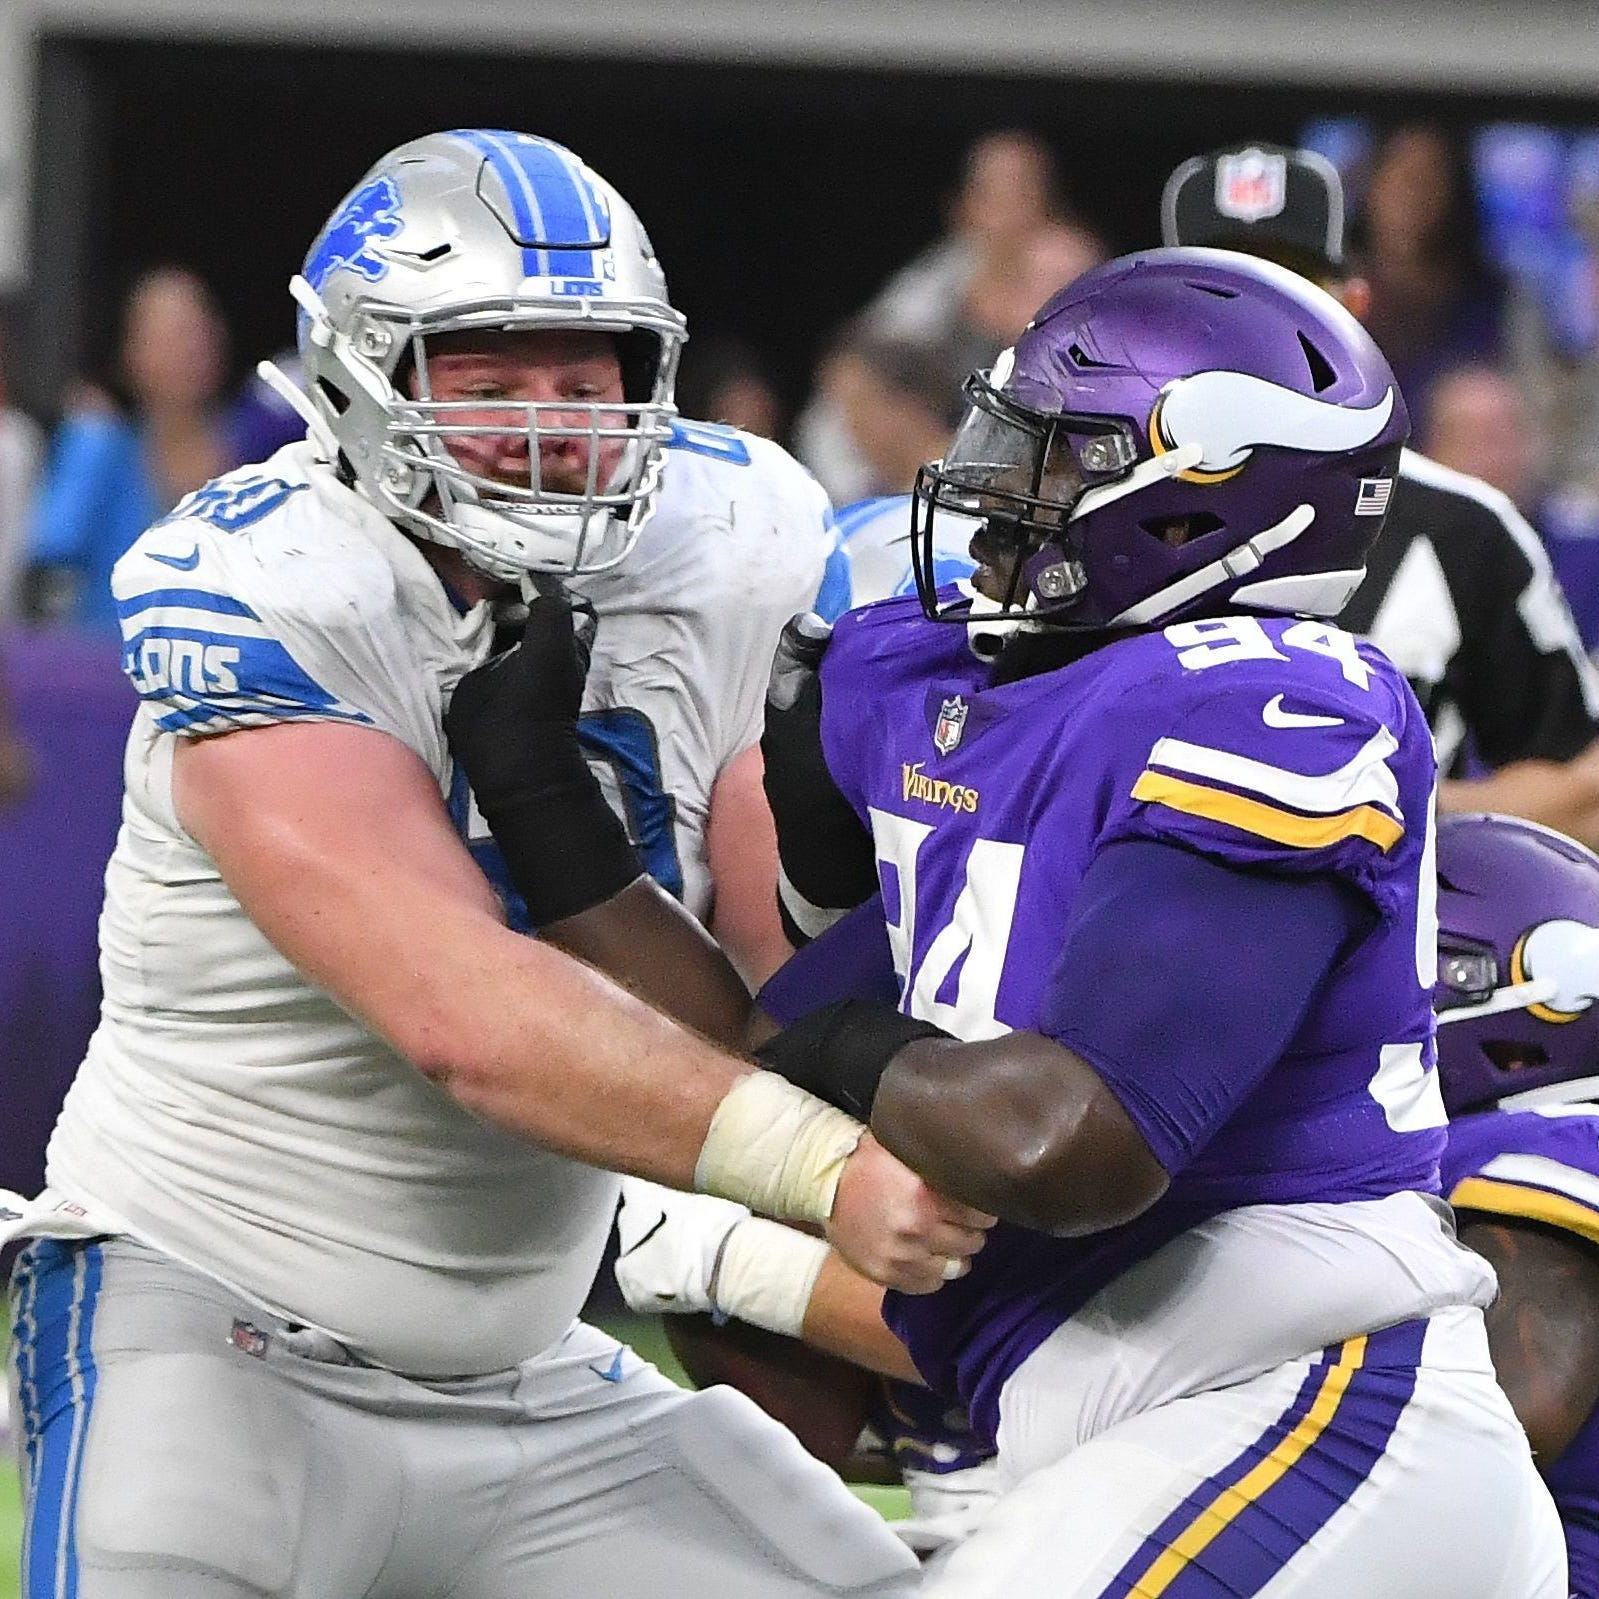 Lions' Graham Glasgow focused on being NFL's best center, not new contract